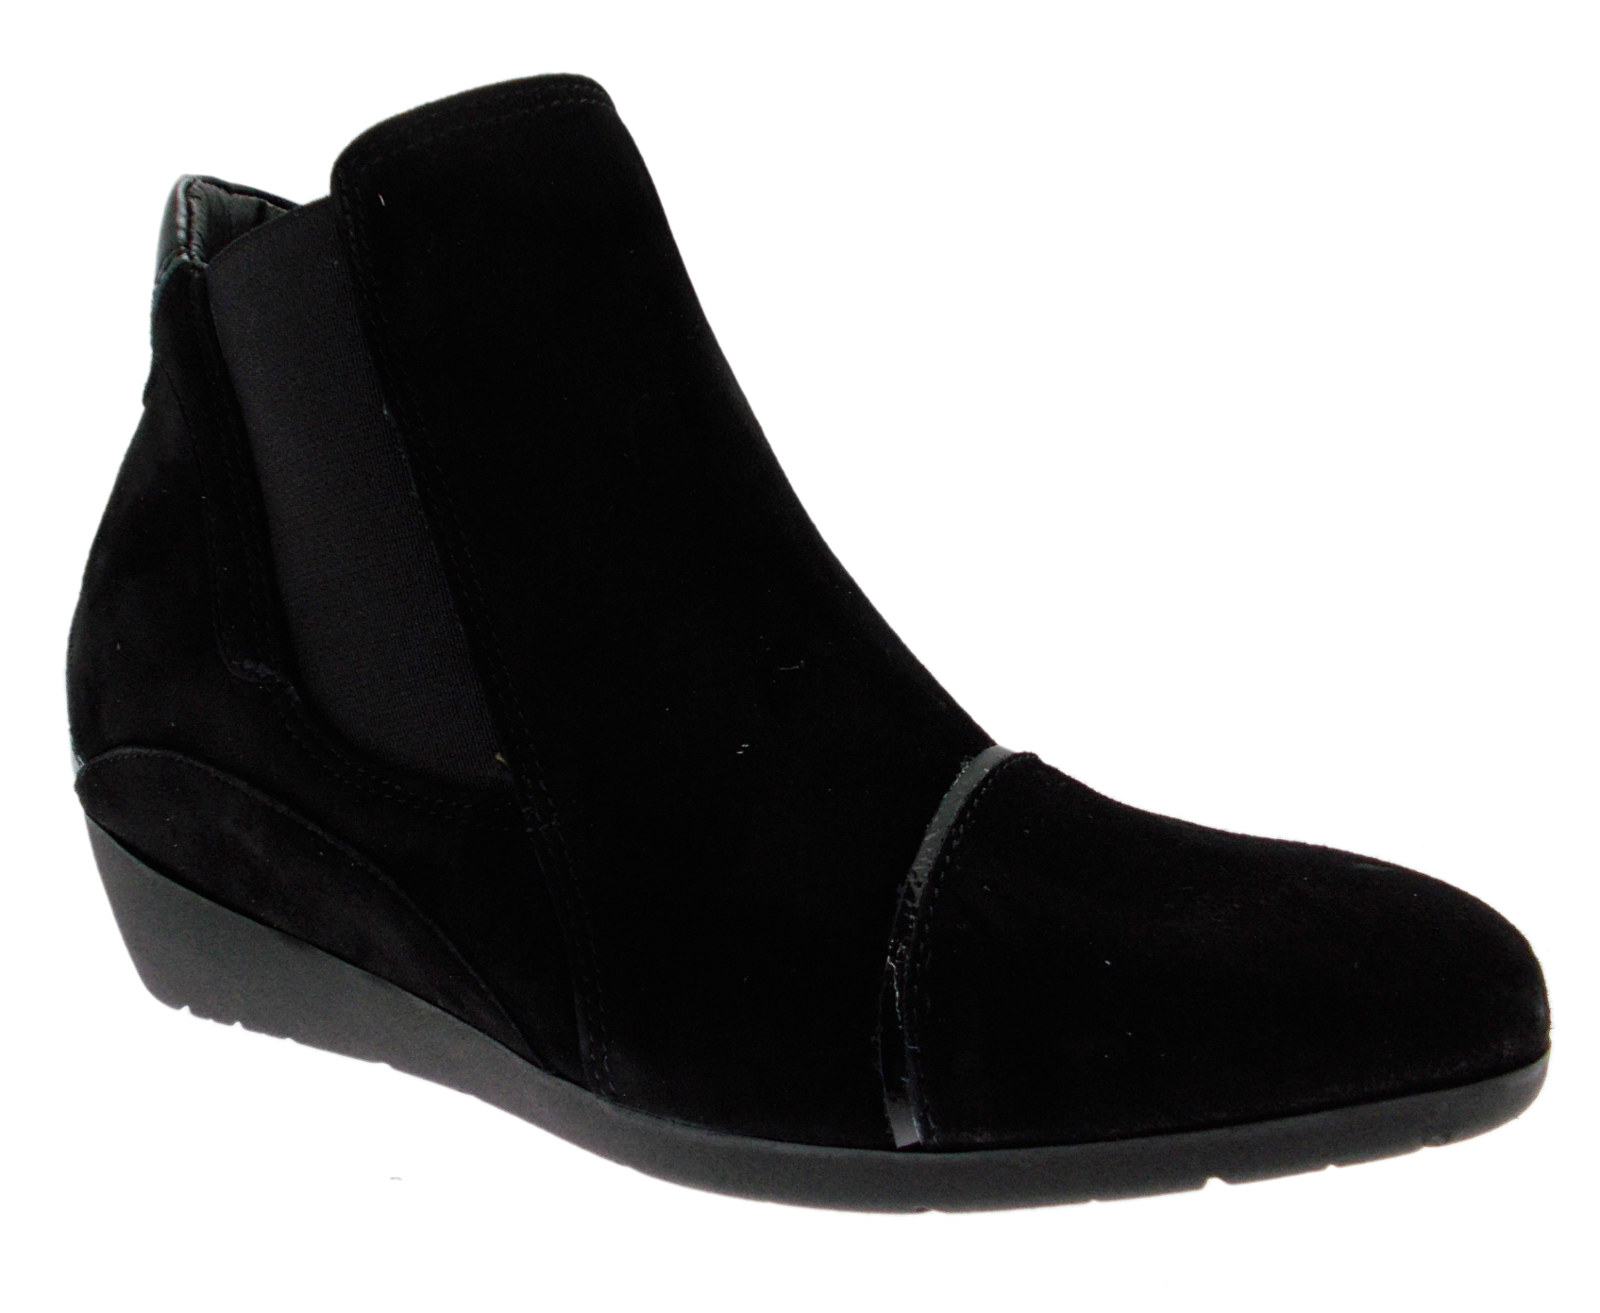 Black suede wedge boots Riposella